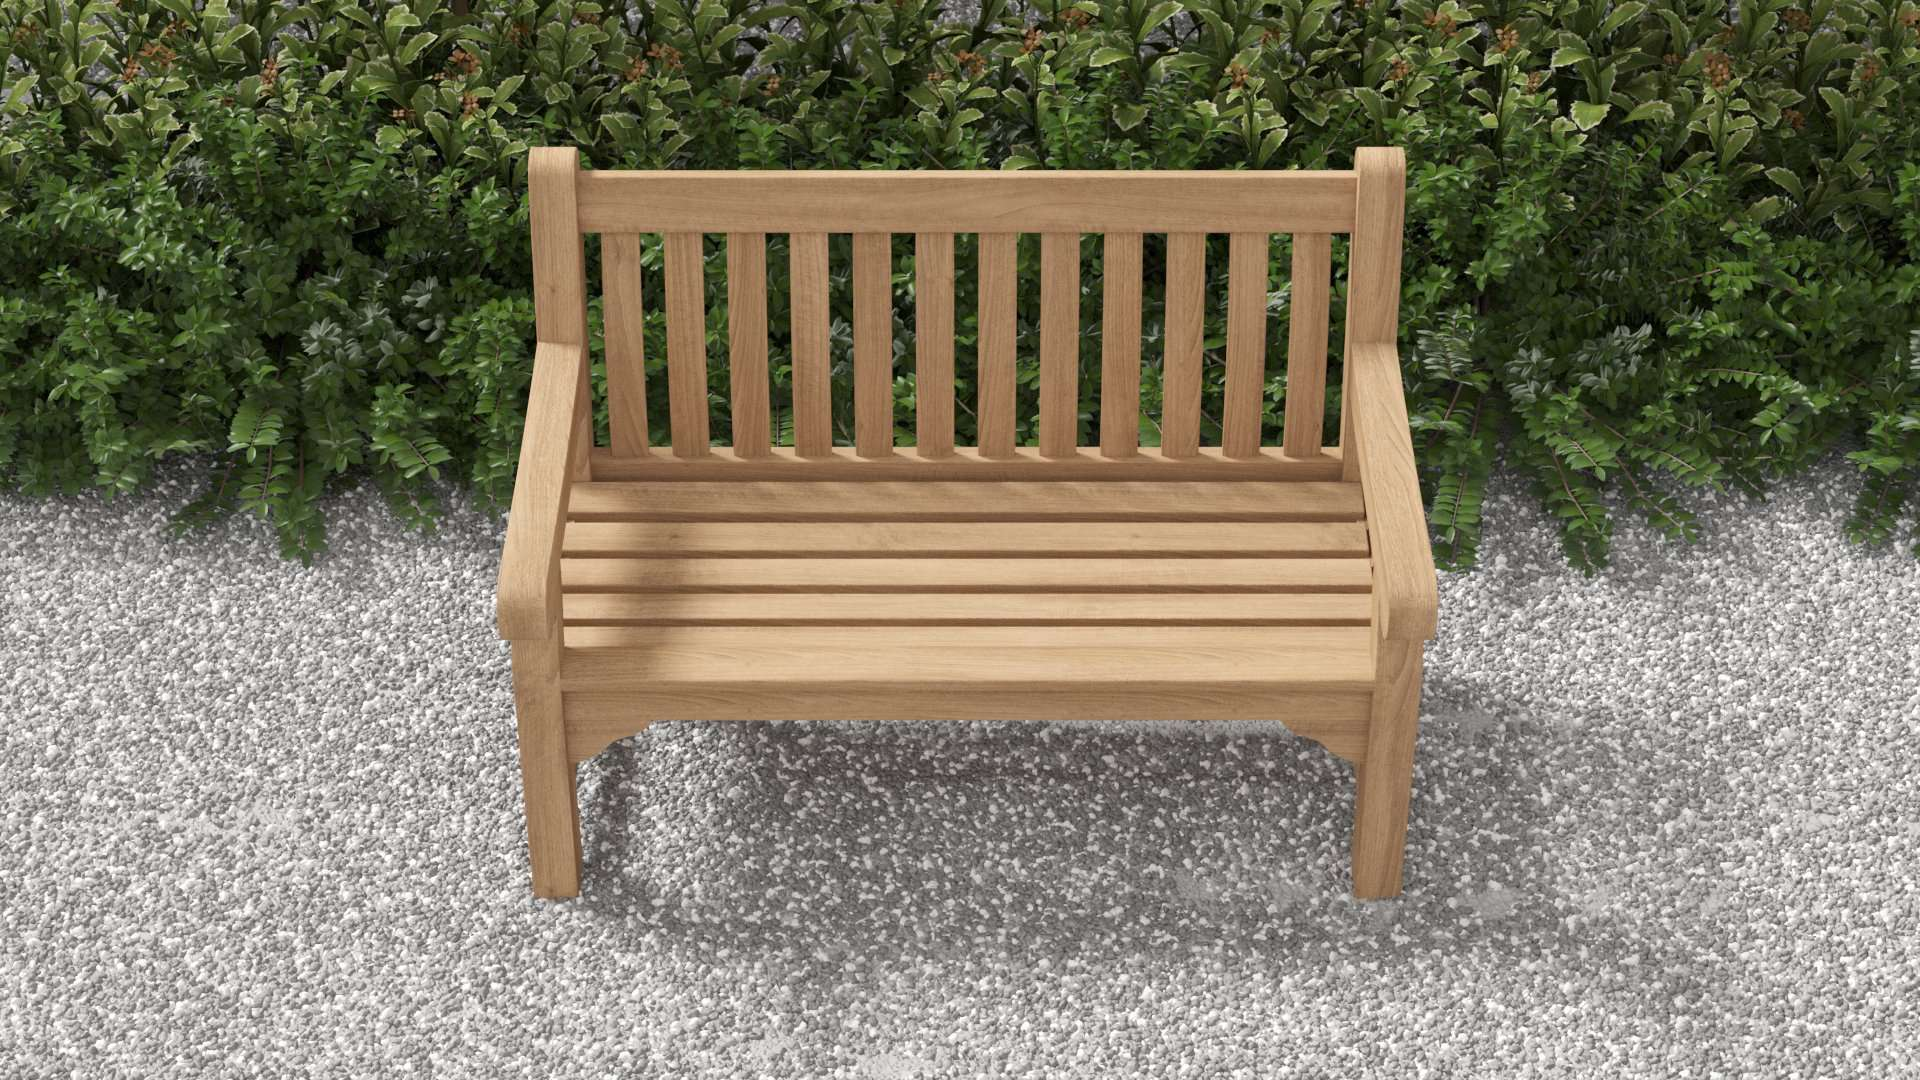 Salisbury Teak Bench 2 Seater  - Chic Teak® | Luxury Teak Furniture